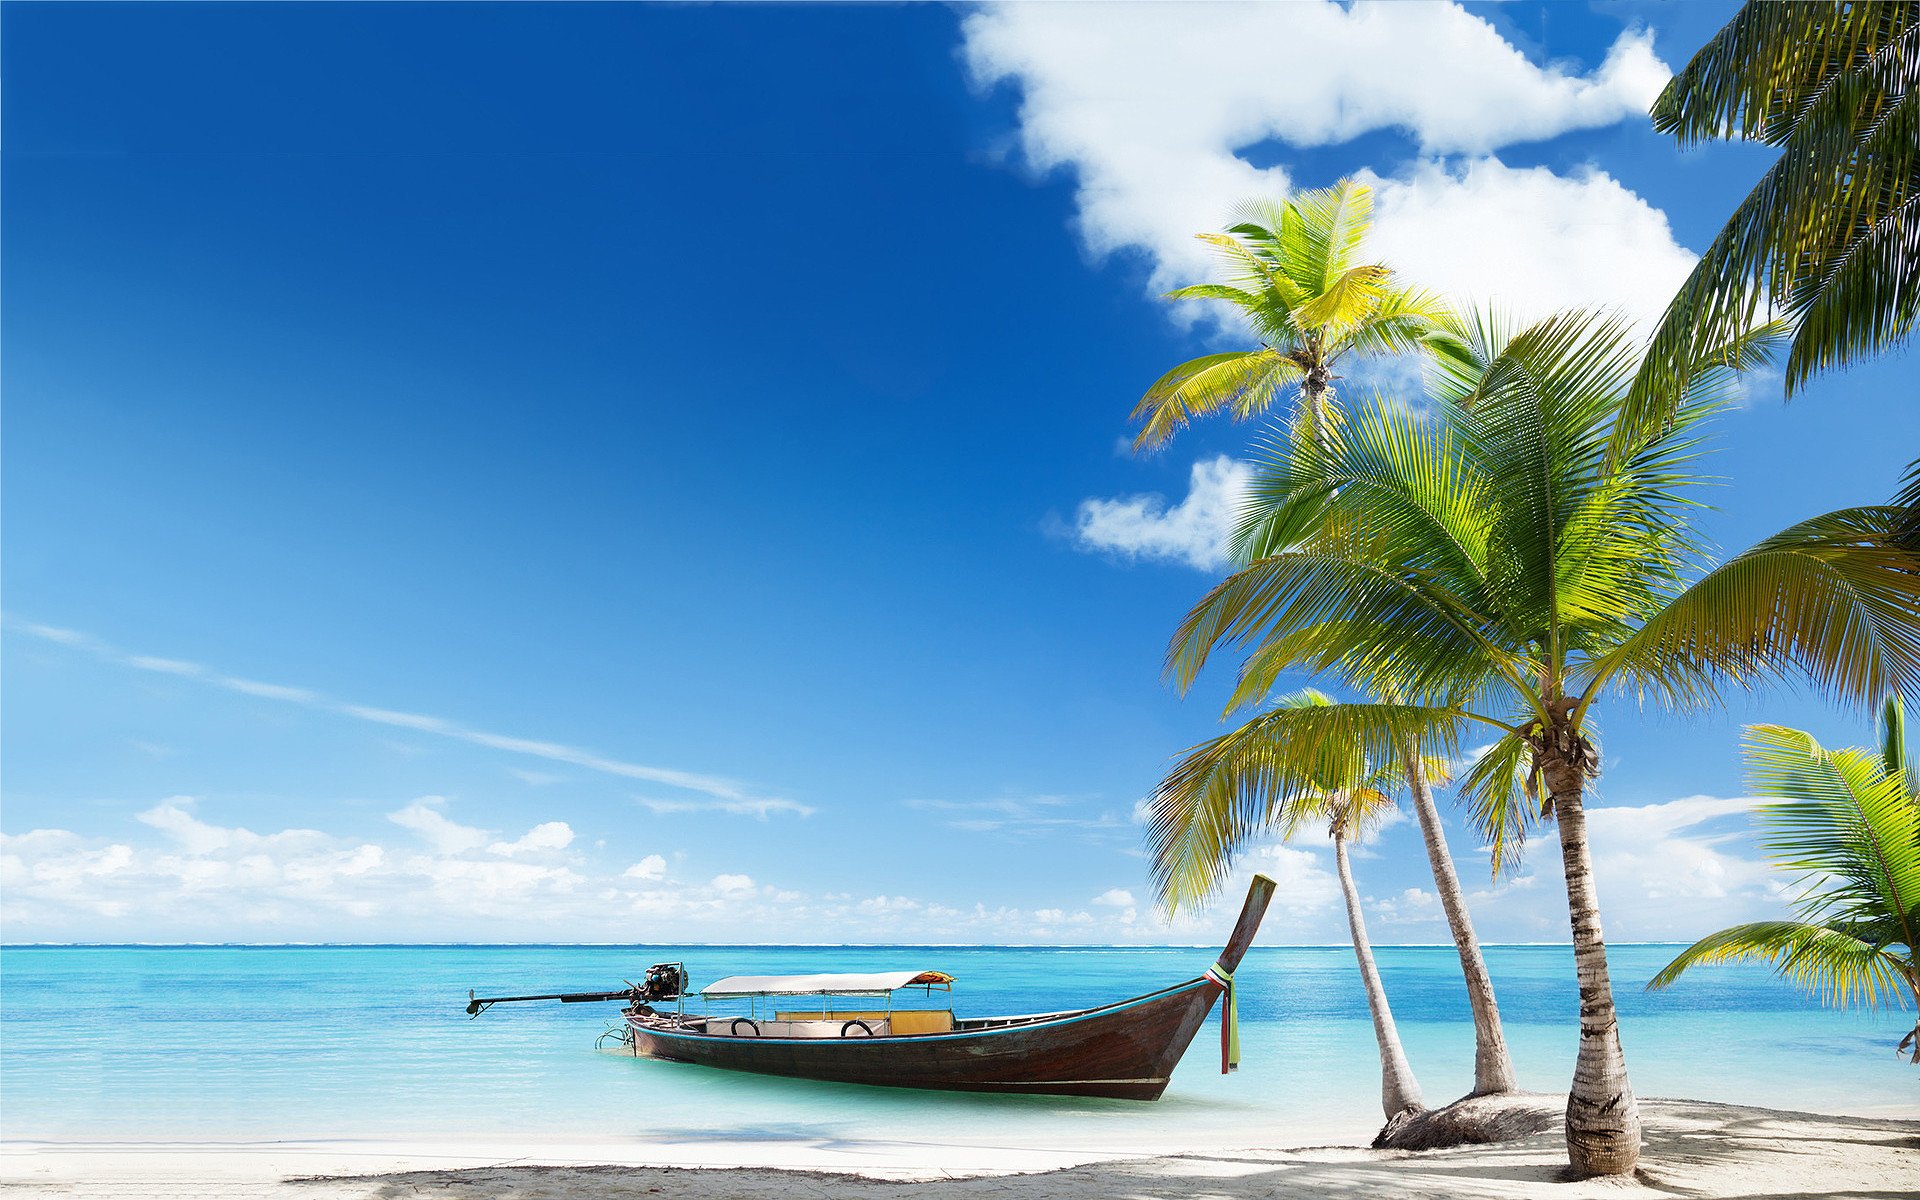 Free Beach Screensavers And Wallpapers Boat On Tropical Beach photos .